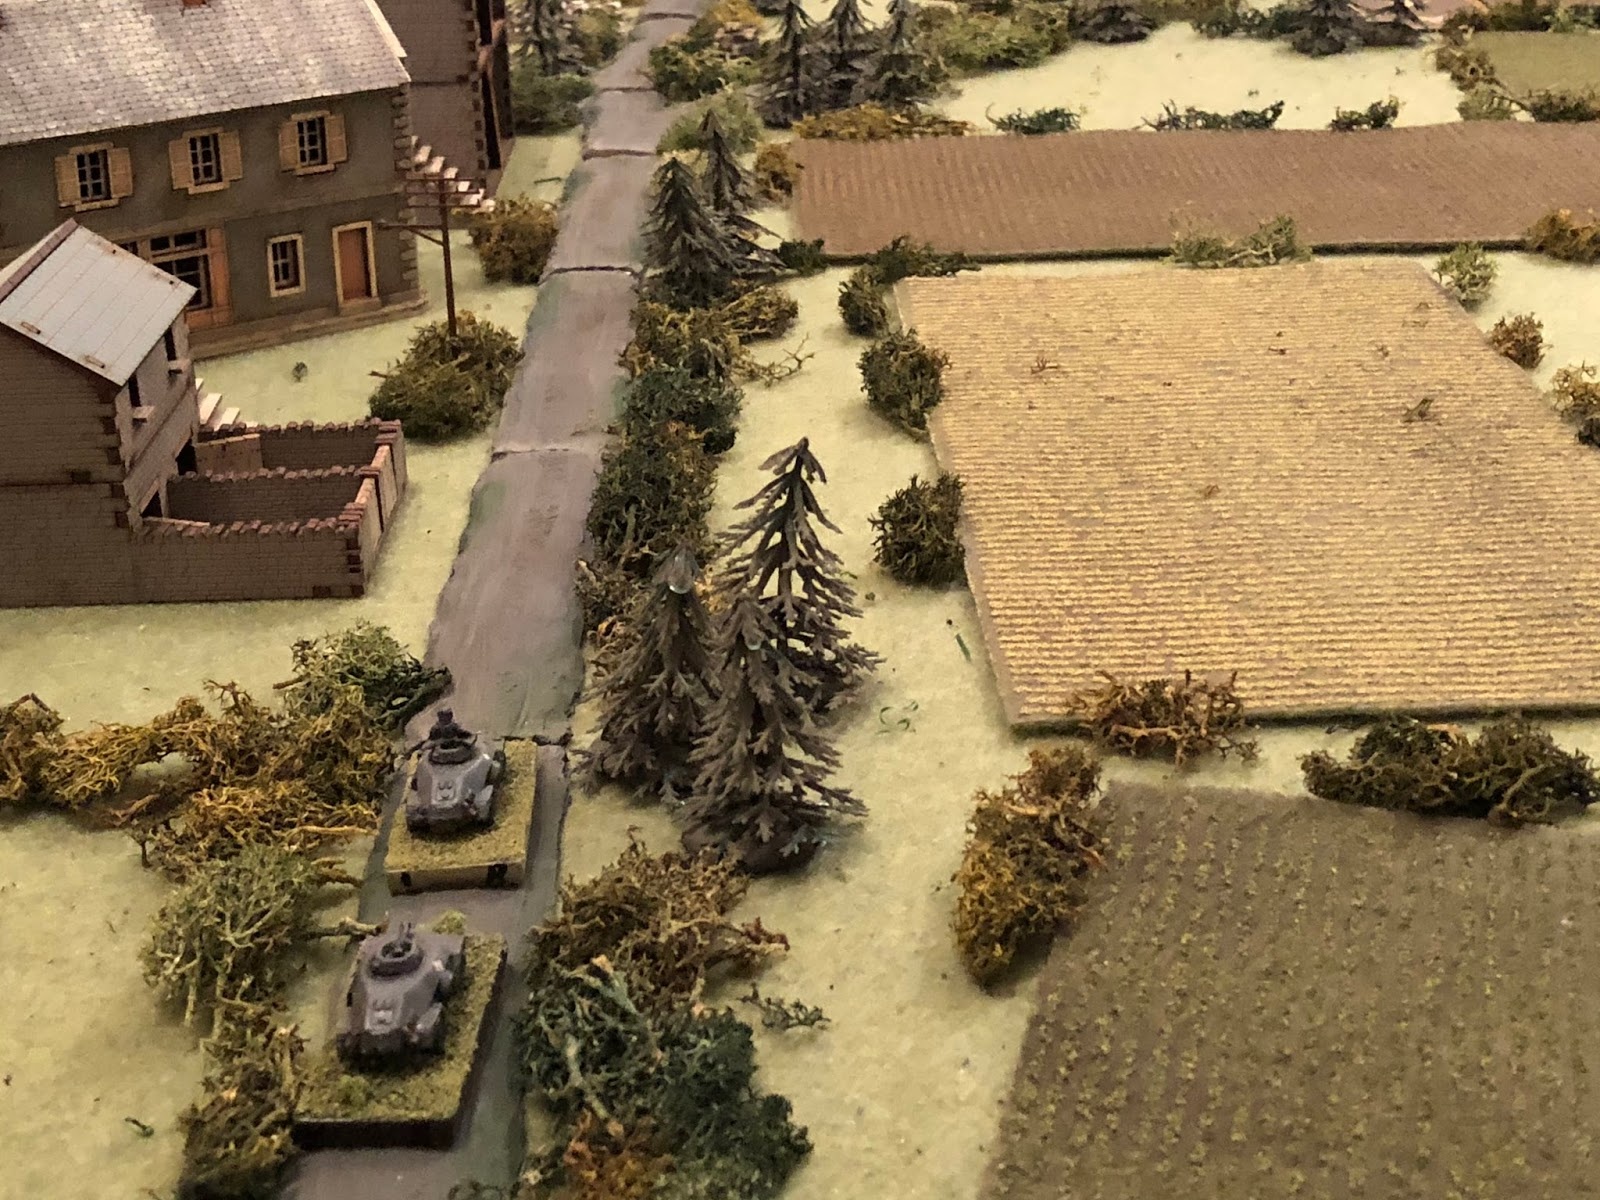 Hearing the reassuring roar of Panzer III engines coming up on his right (off camera to bottom right), Lt Weidner and Cpl Edst cautiously advance their armoured cars up main street, almost reaching the Granary (top left).  Lt Weidner spots something up ahead and calls a halt...